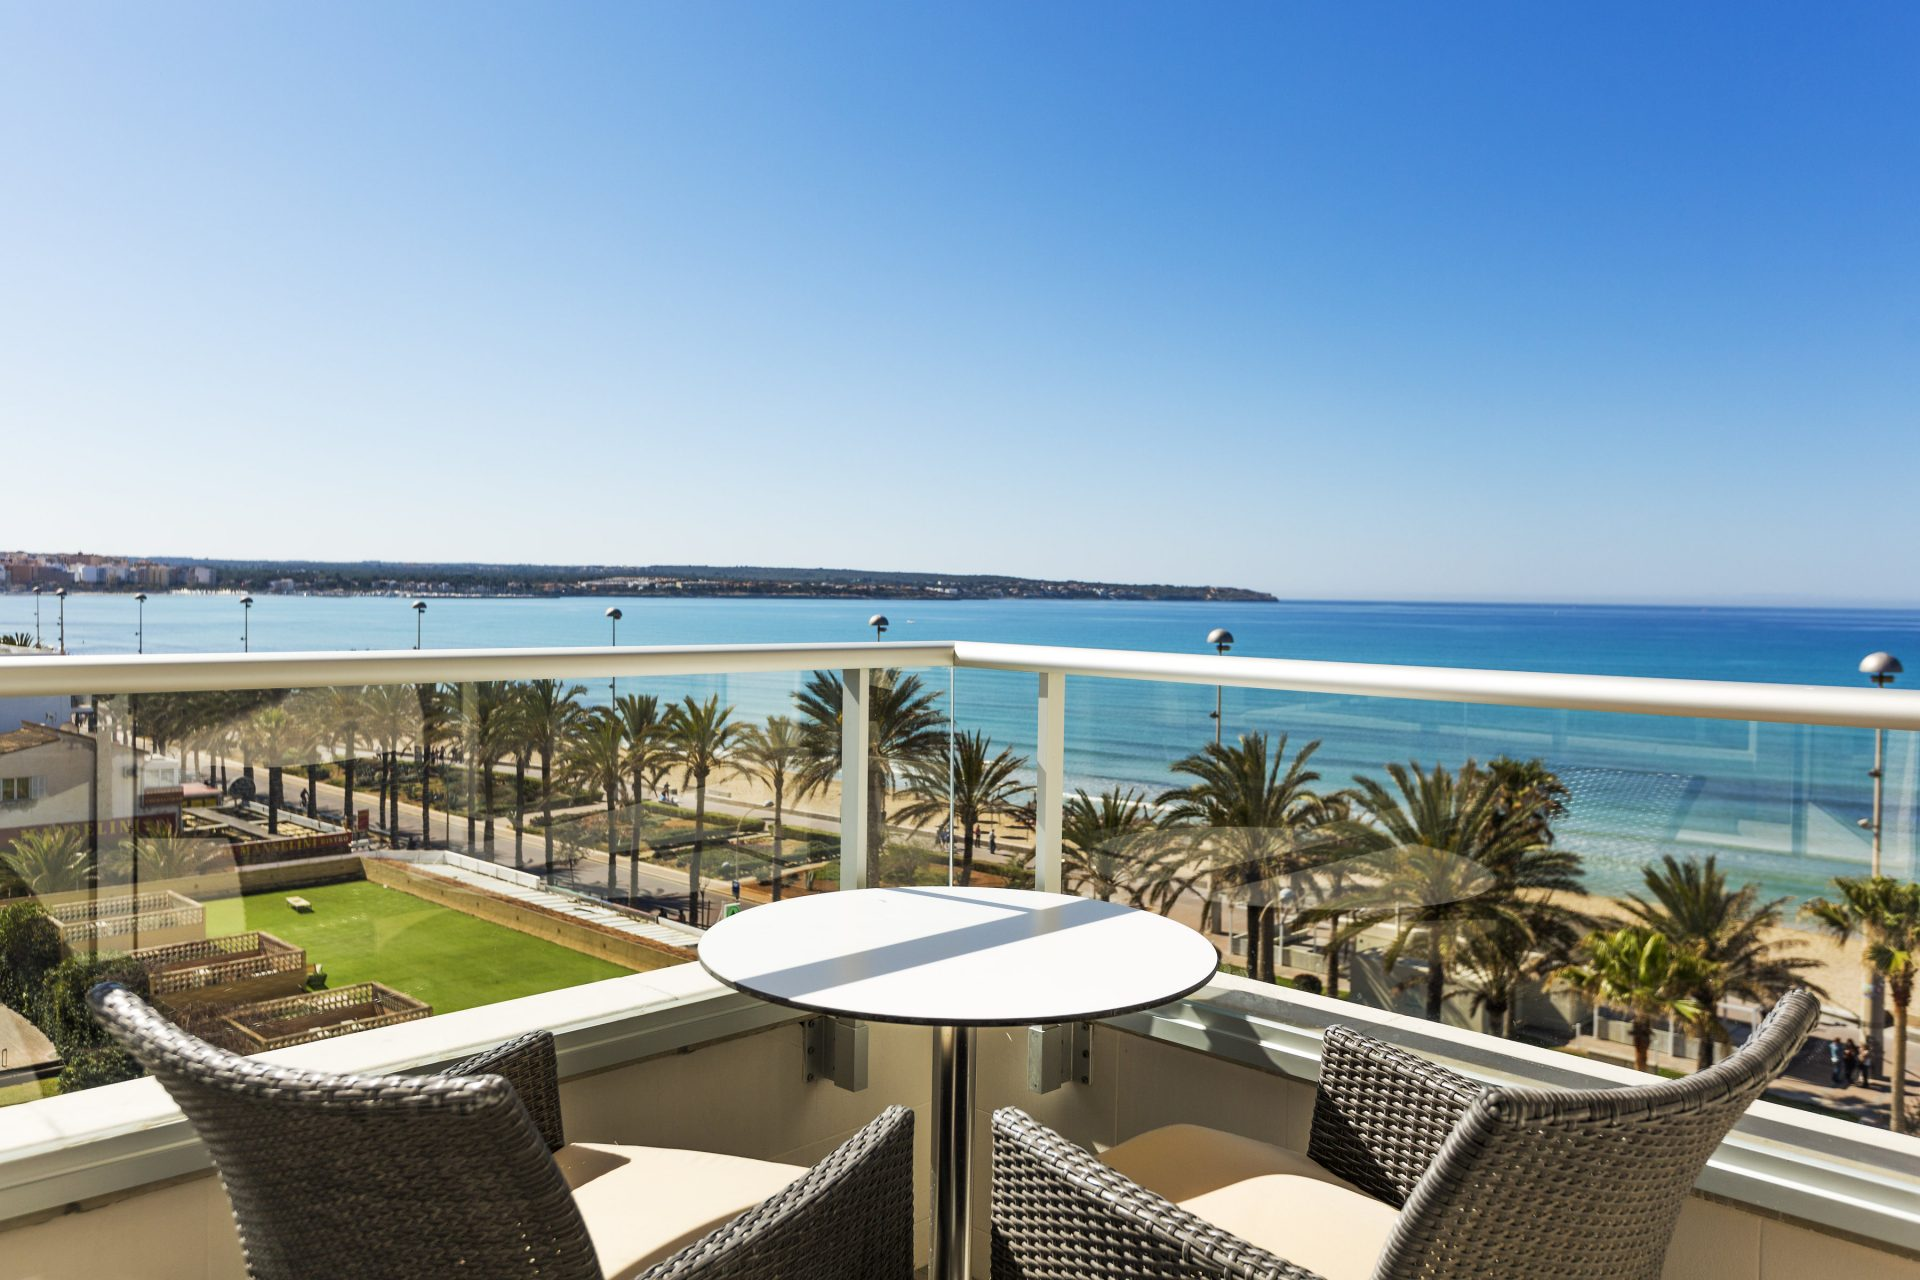 Pure Salt - Luxury Hotels - Amazing views - Playa de Palma - Mallorca